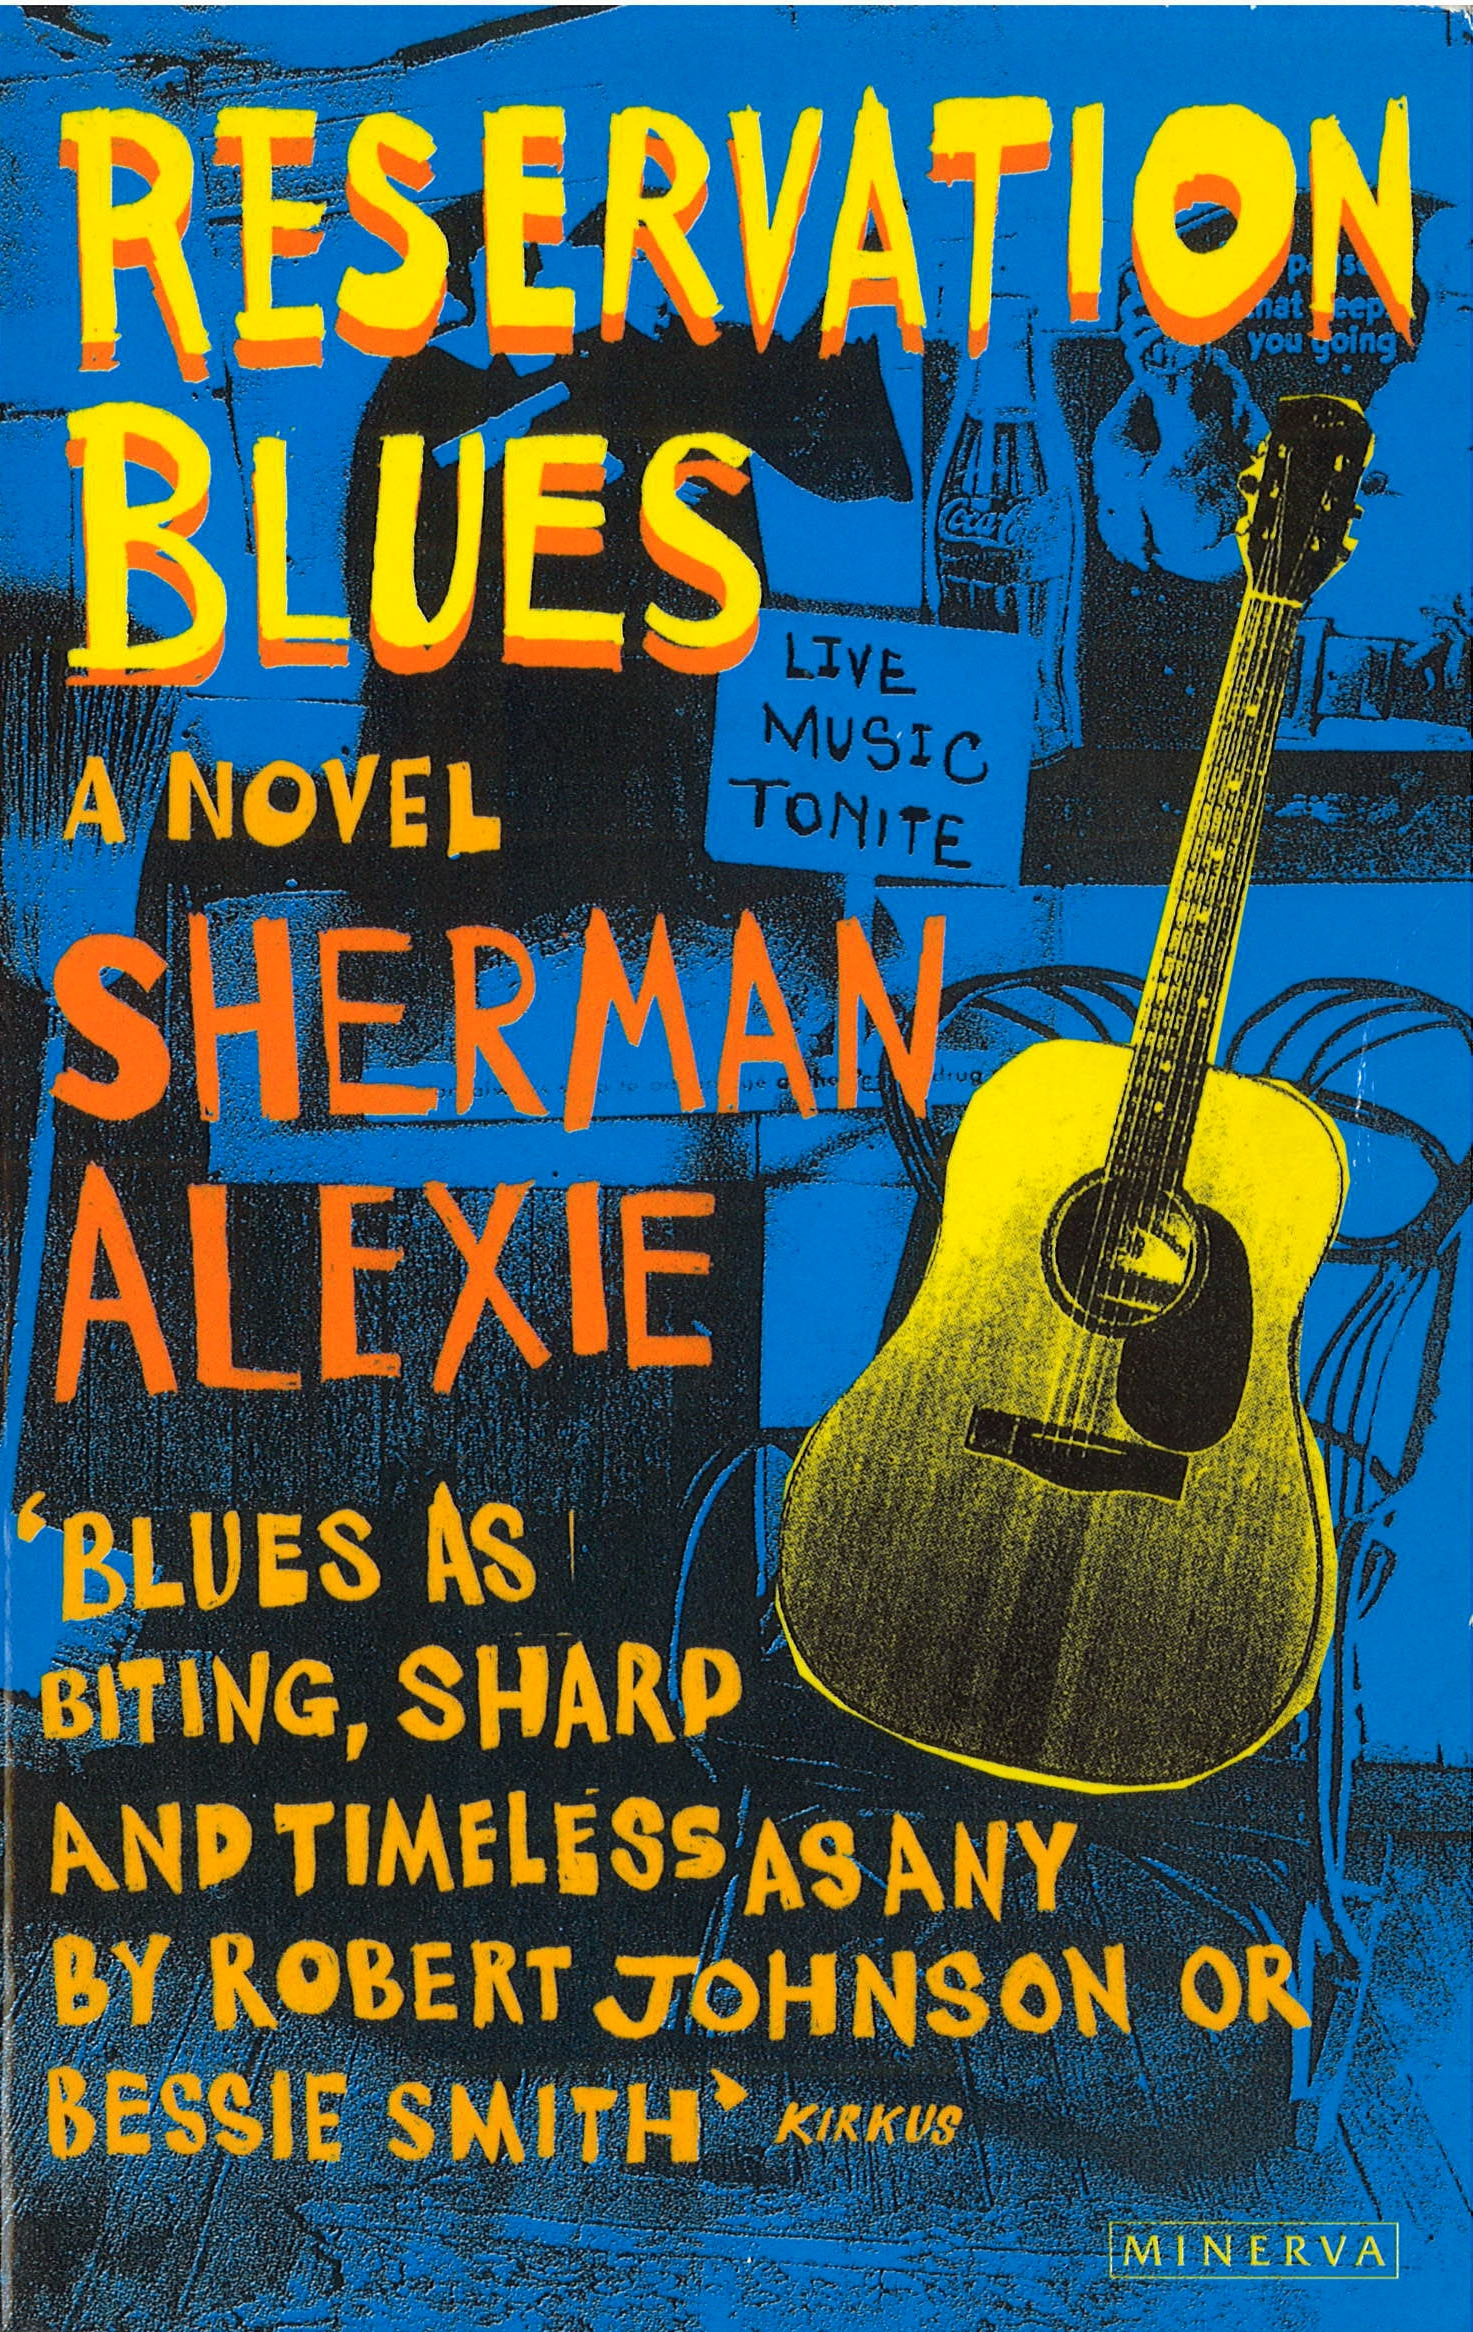 reservation blues by sherman alexie essay Reservation blues essay questions by sherman alexierobert johnson was an african-american man who lived at the beginning of the 20th century and who is commonly associated with blues music essay on music .